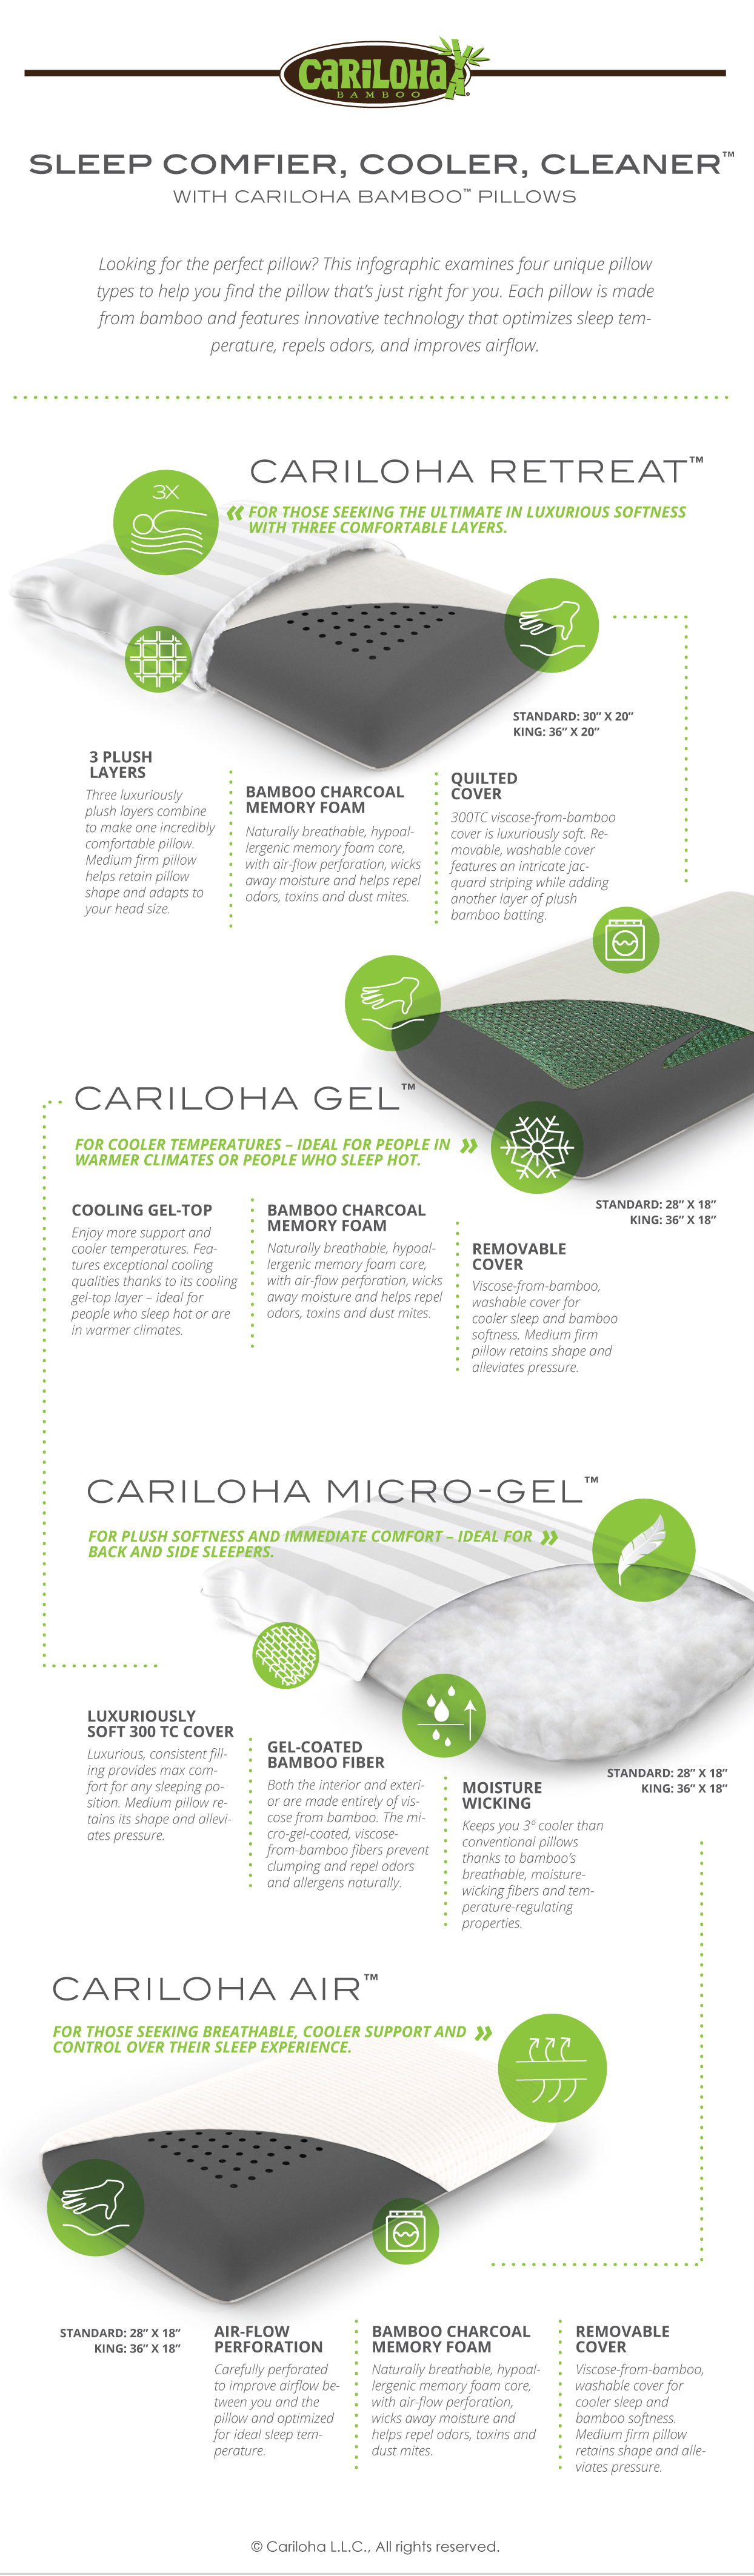 cariloha-bamboo-pillows-infographic